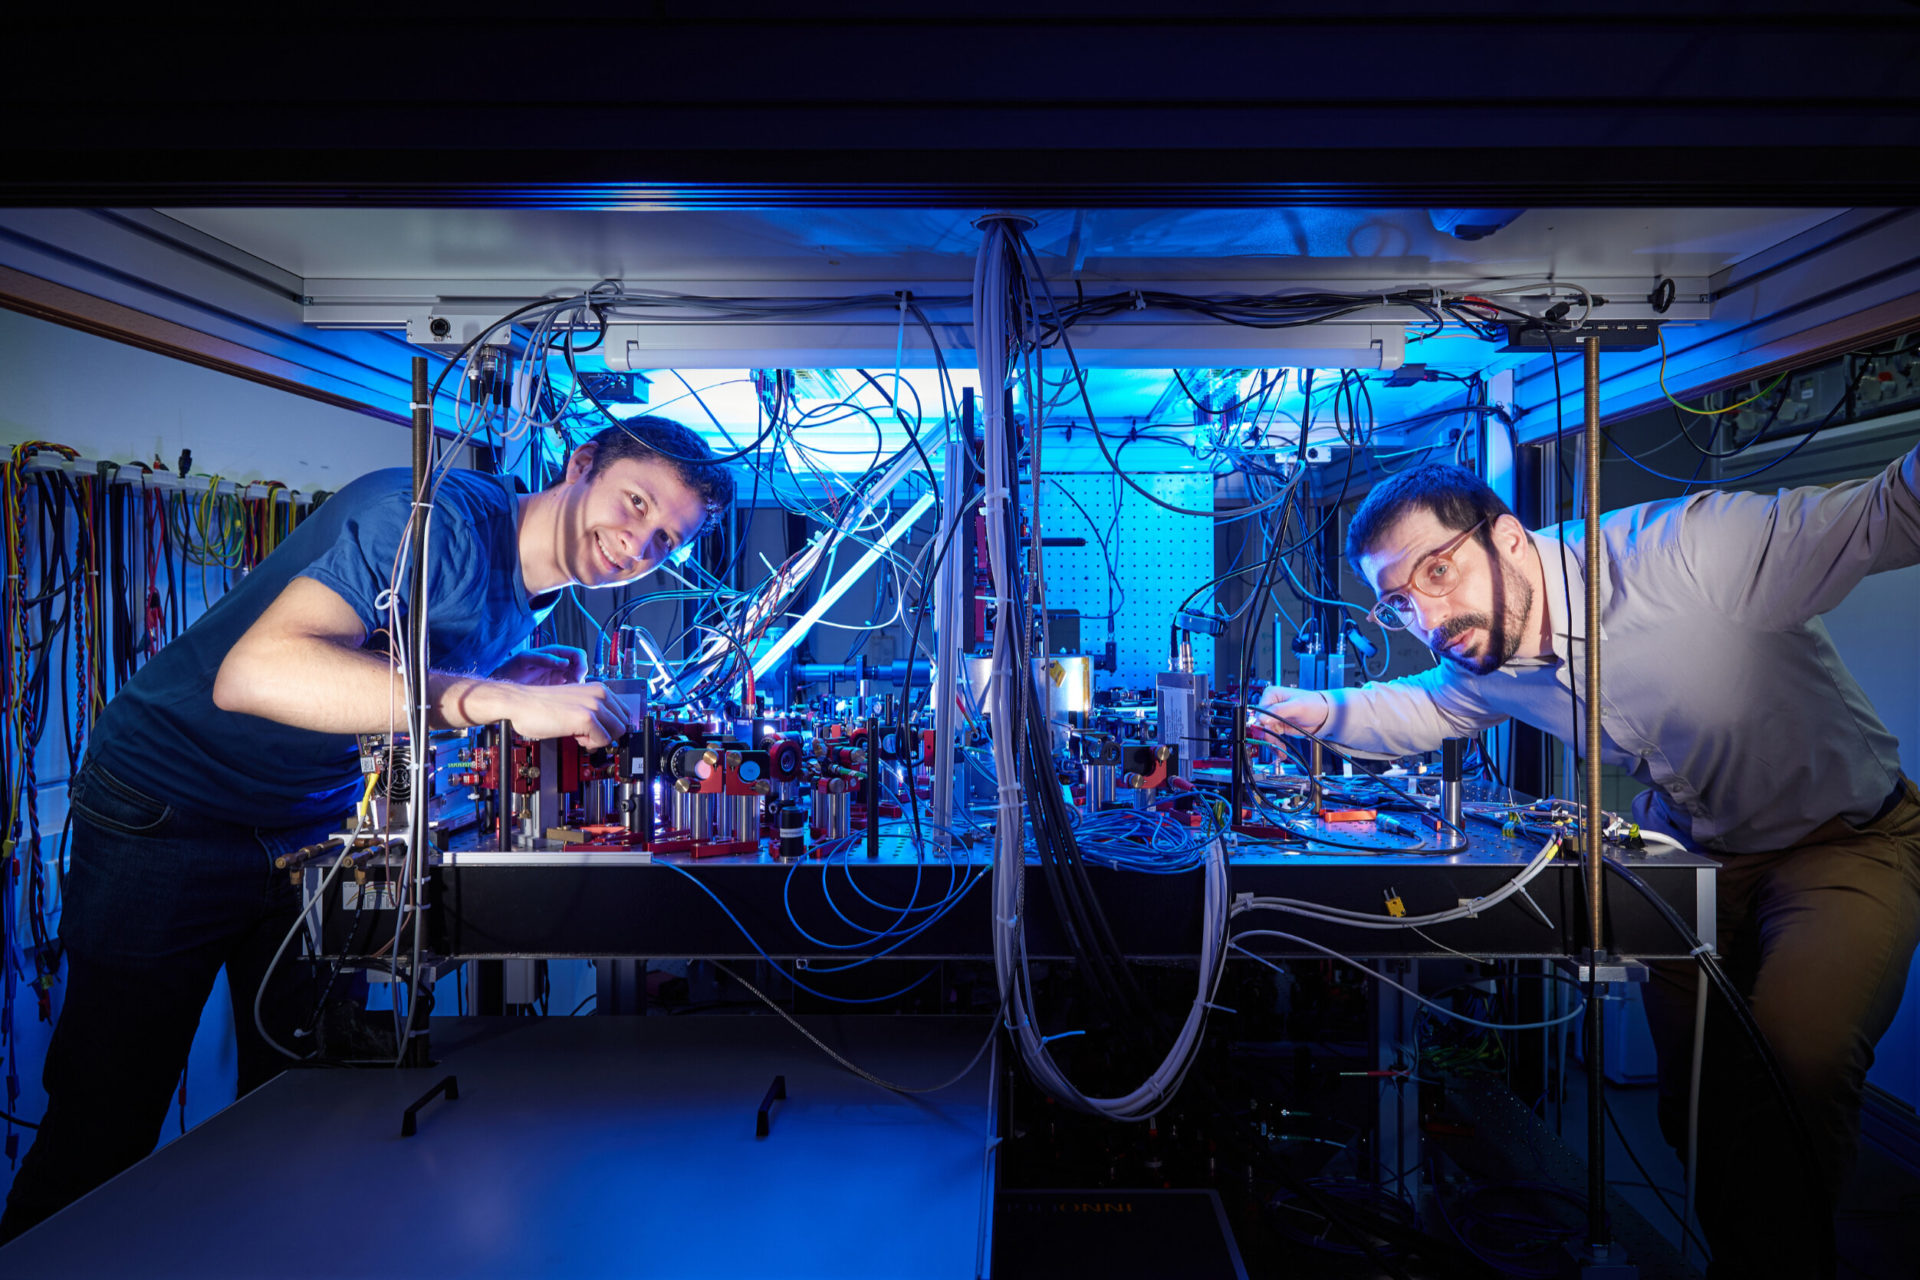 First author Manolo Rivera Lam (left) and principal investigator Dr. Andrea Alberti (right) at the Institute of Applied Physics at the University of Bonn. Credit: © Volker Lannert/Uni Bonn